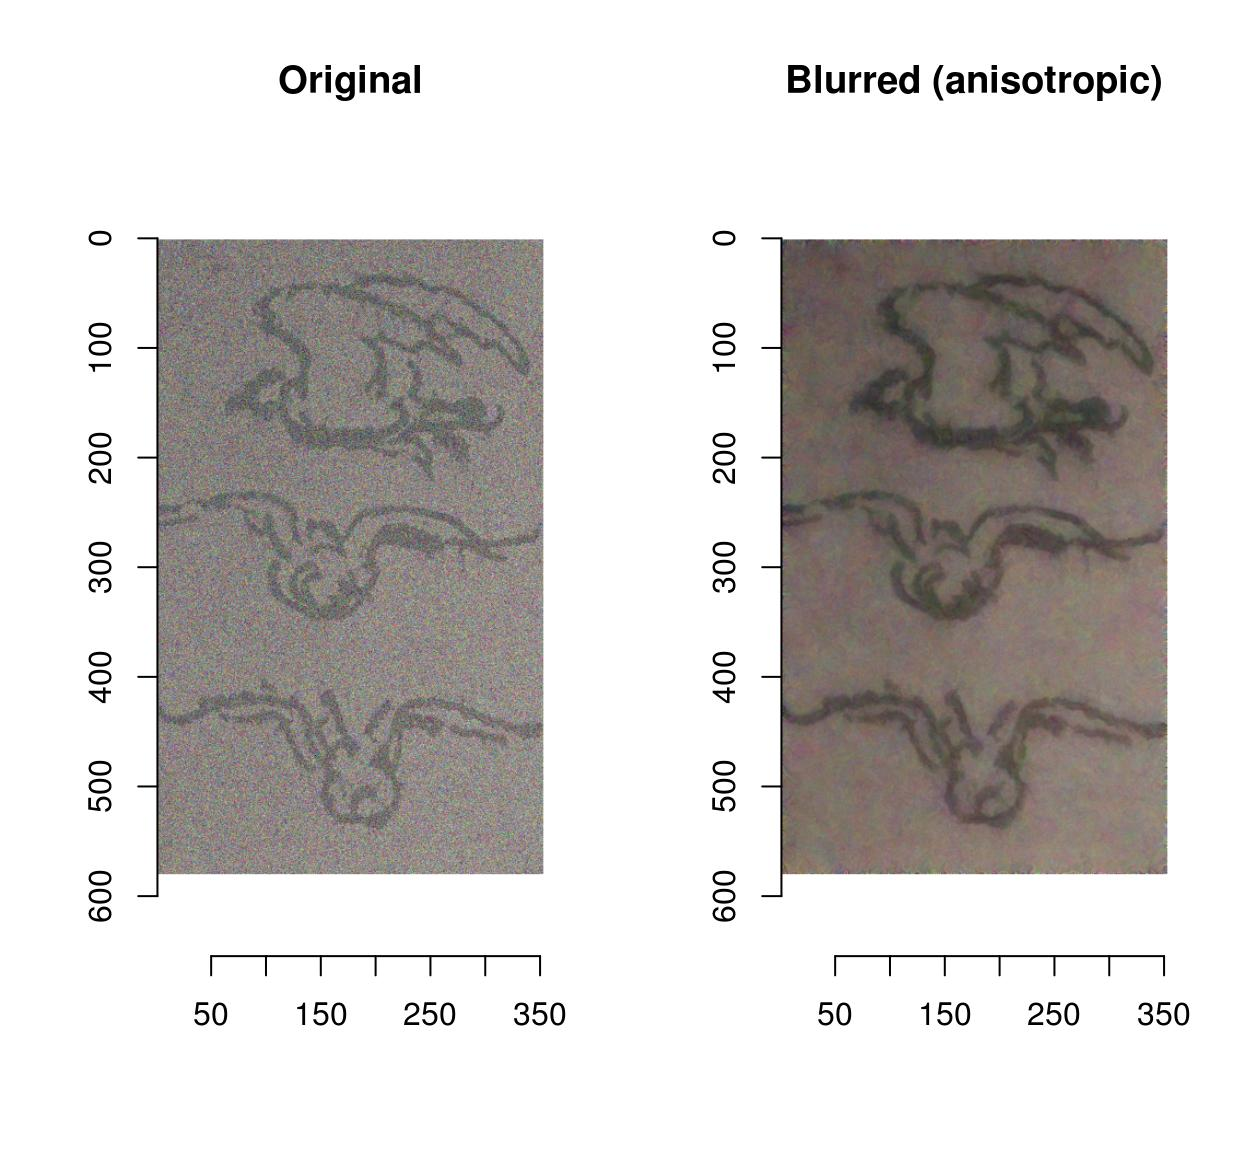 imager: an R package for image processing